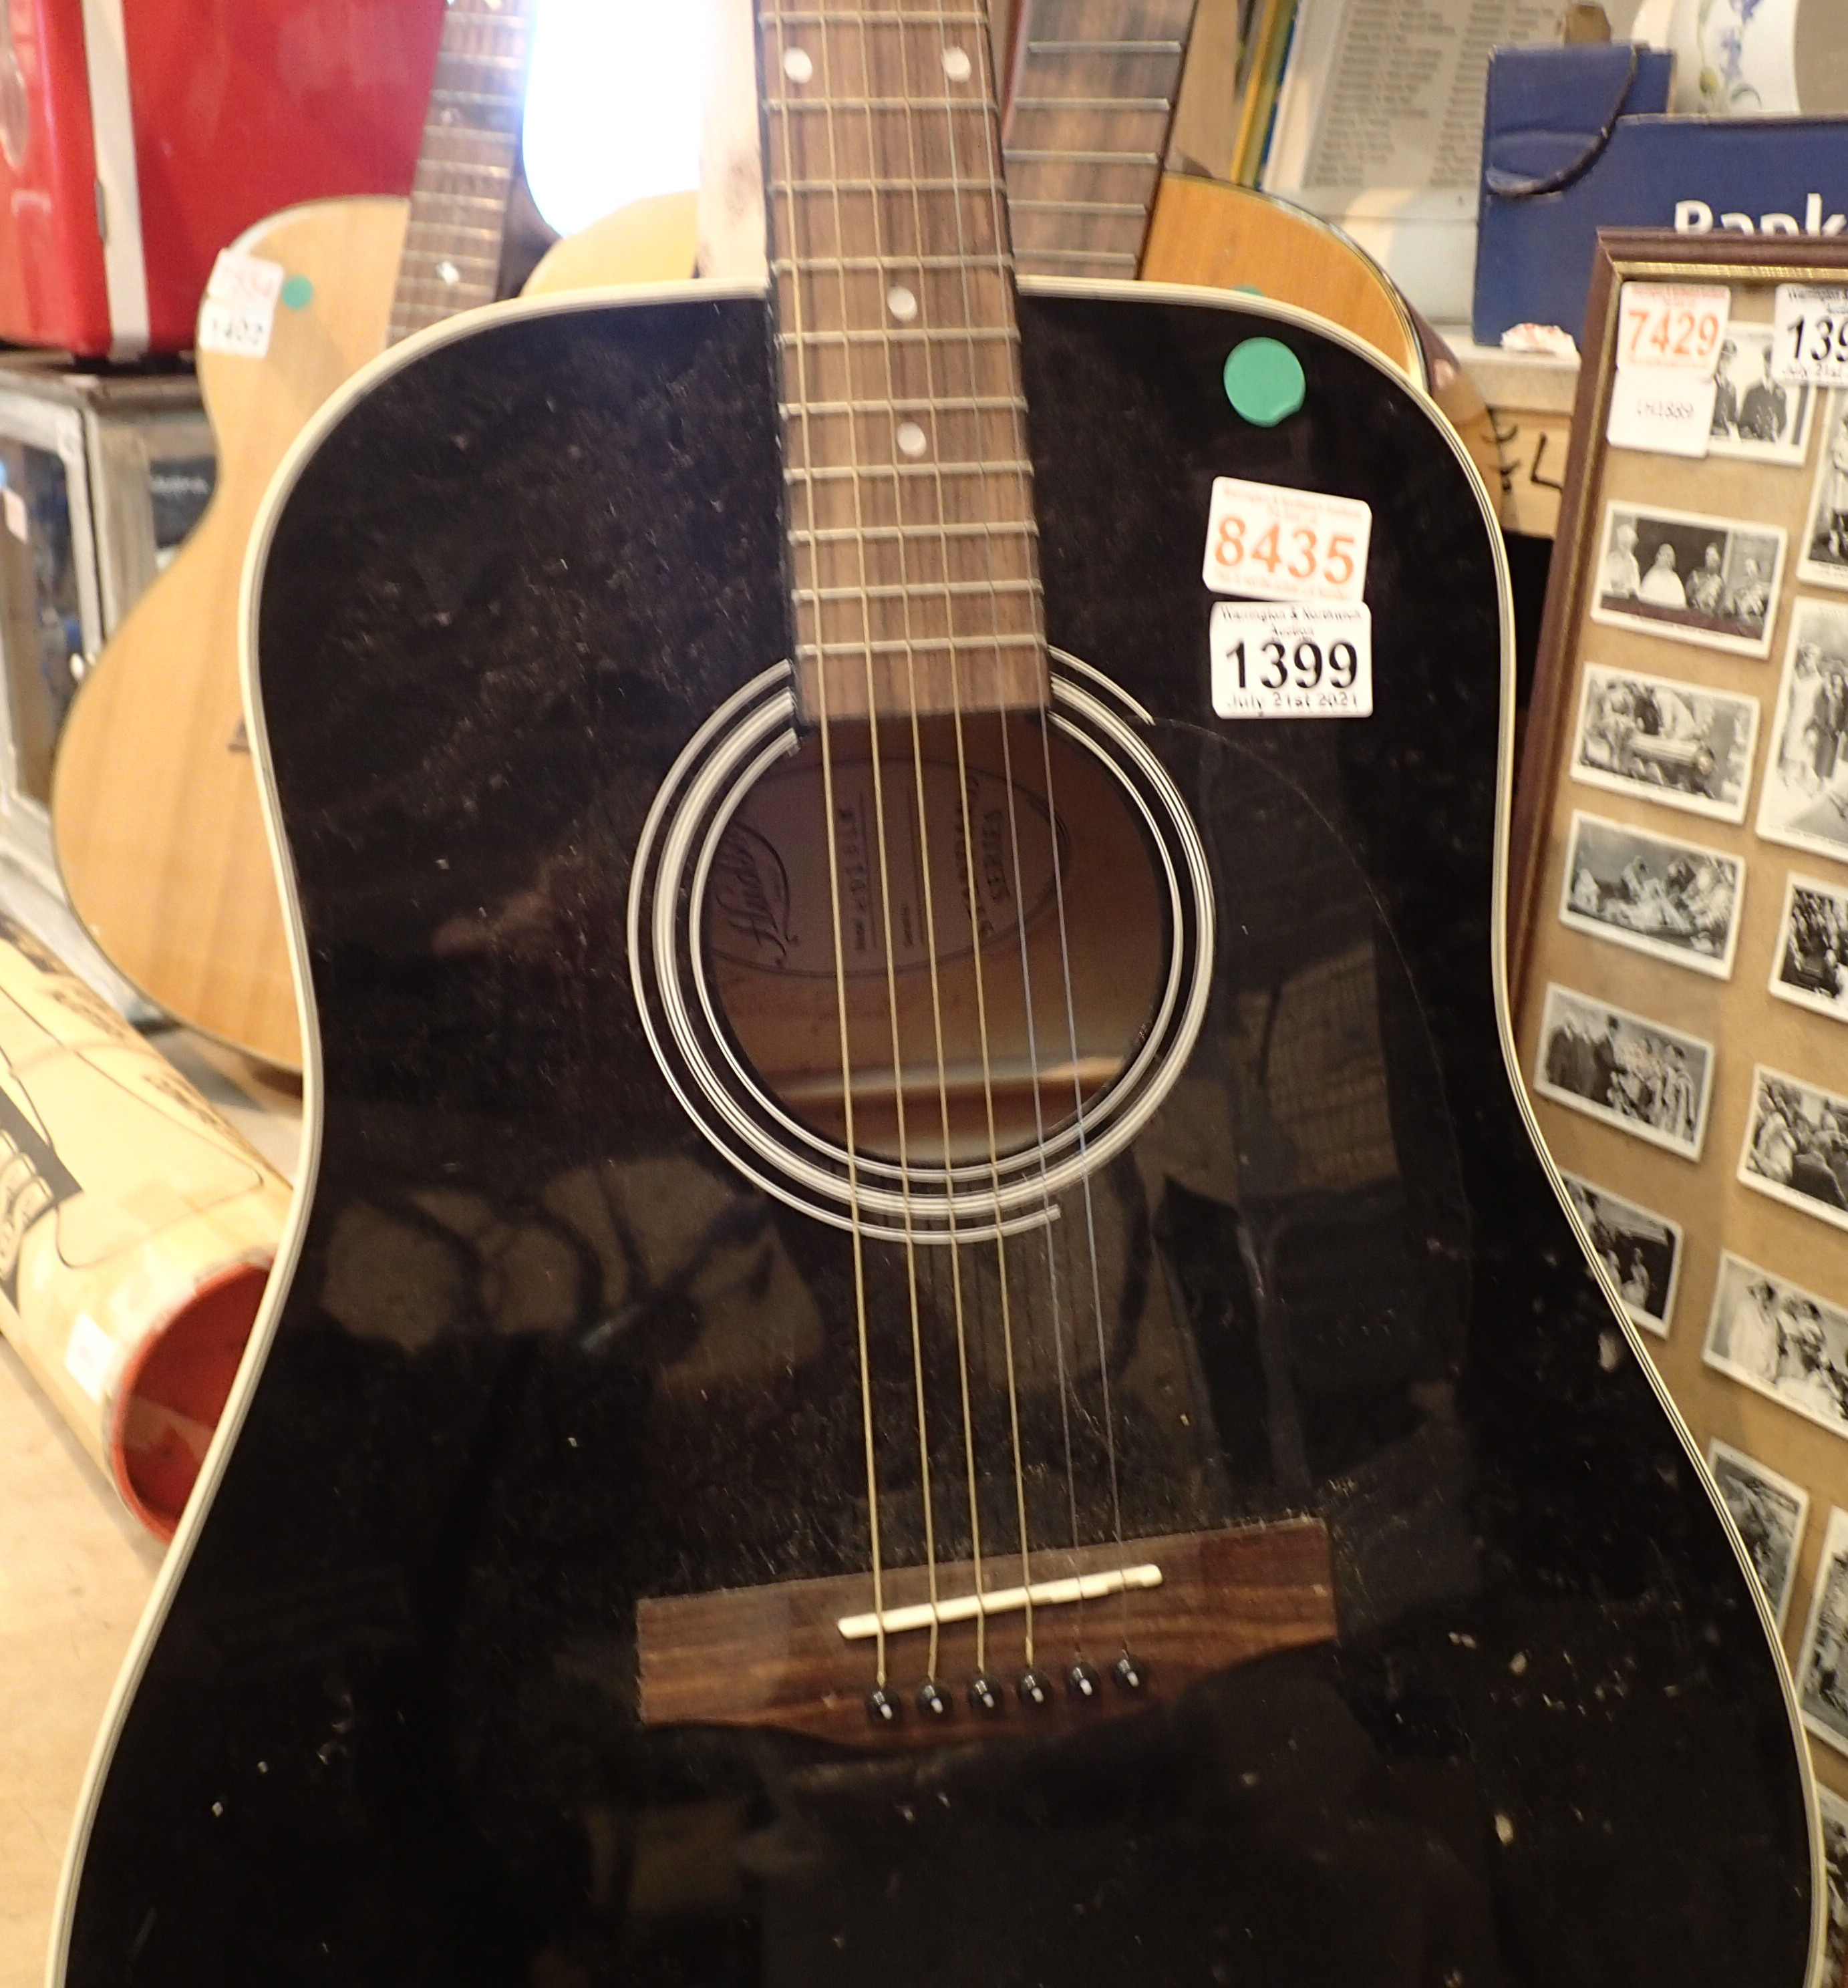 Hudson HDIBLK standard series six string acoustic guitar. Not available for in-house P&P, contact